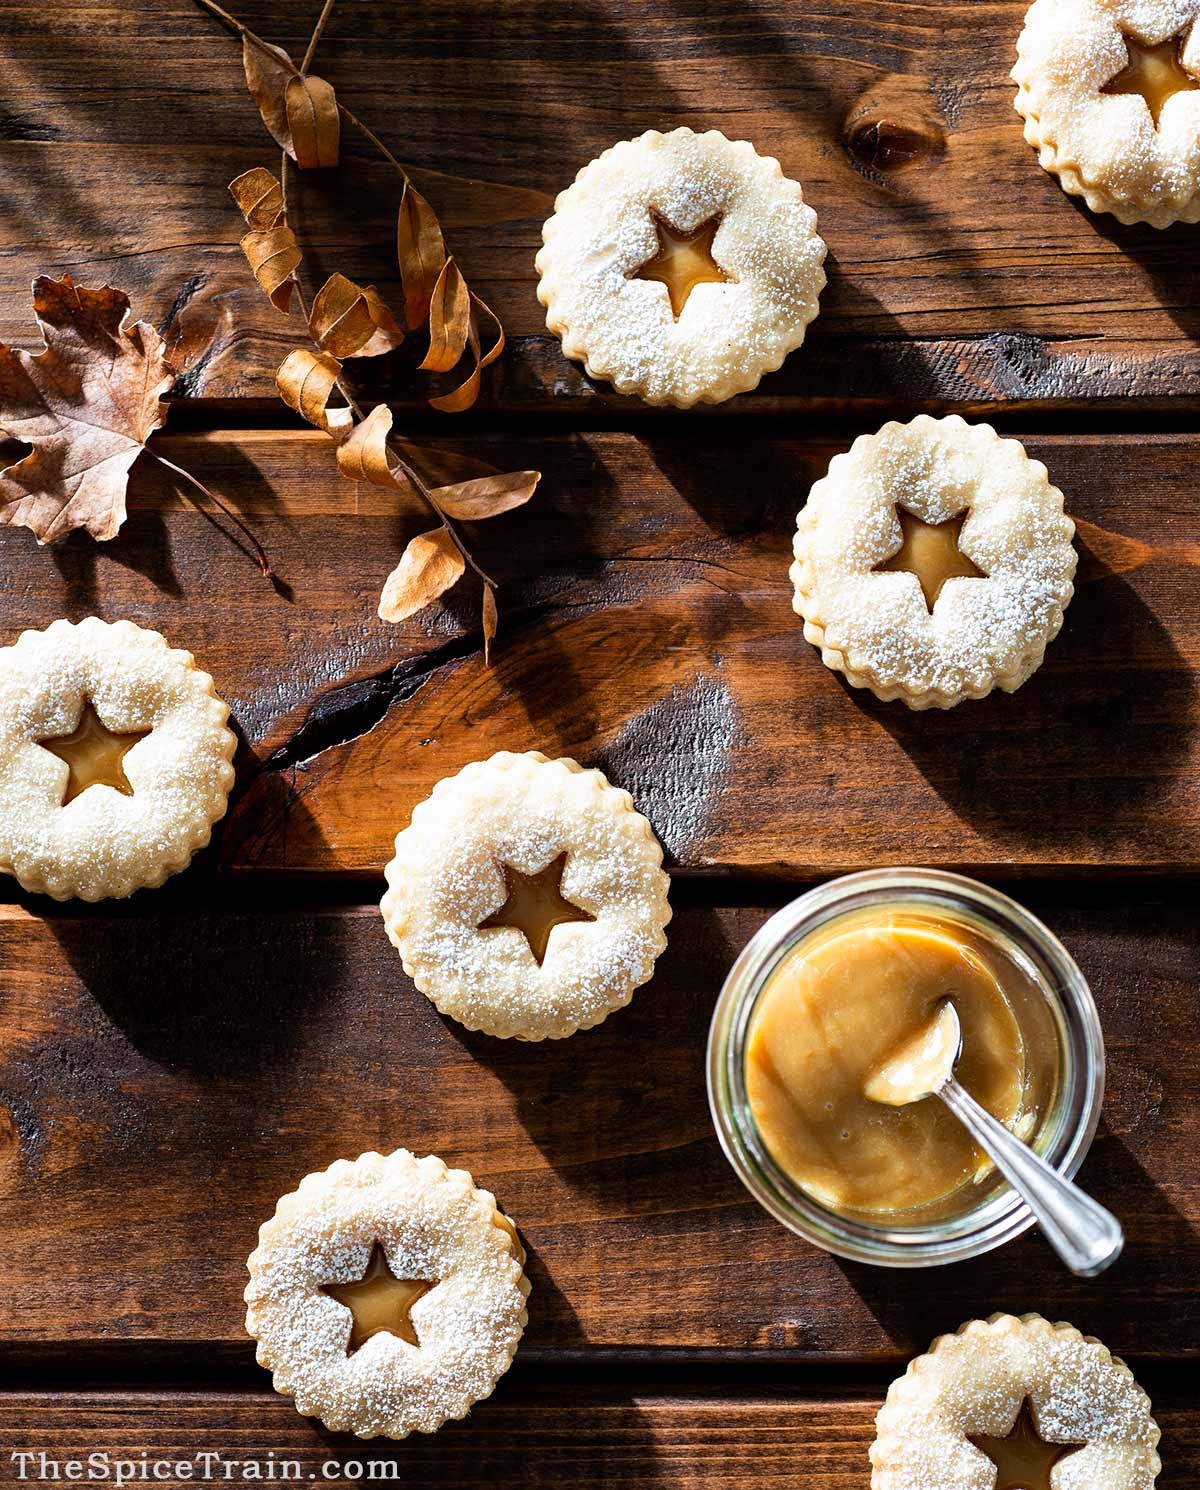 Shortbread Linzer cookies filled with dulce de leche on a wooden table.